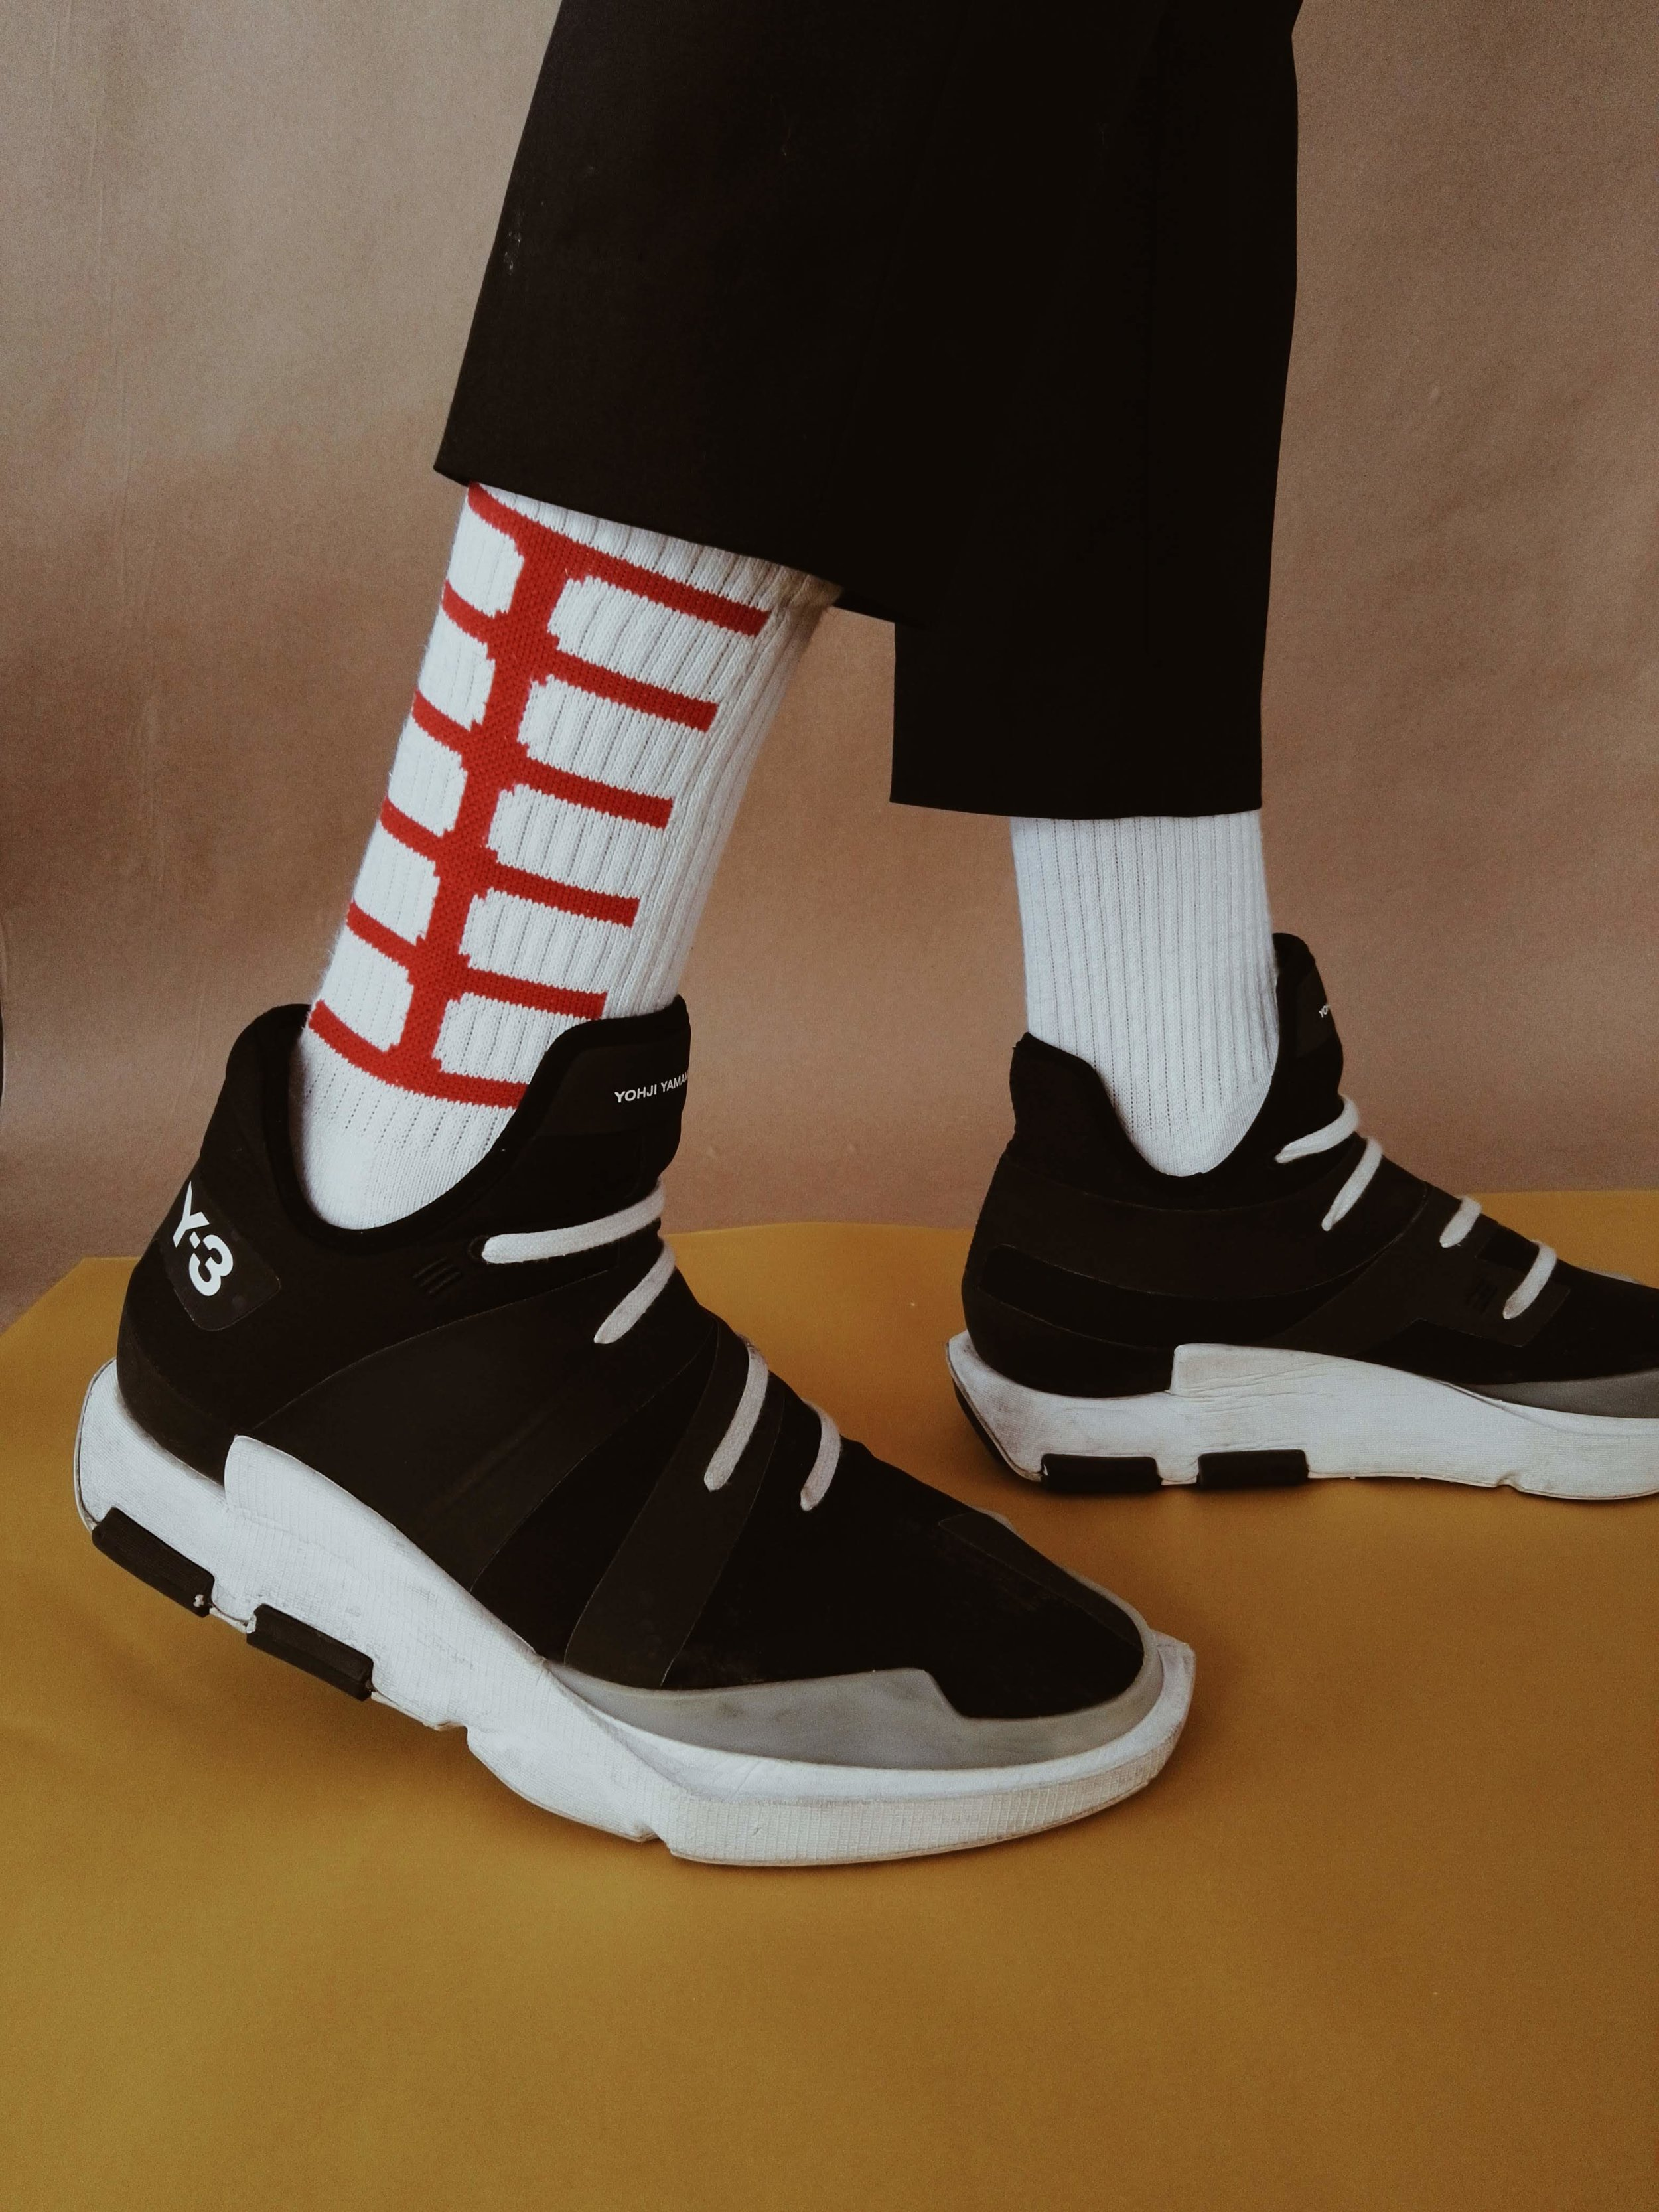 Blind Senses   BSK00 SOCKS / MEN W $12.00 + Shipping